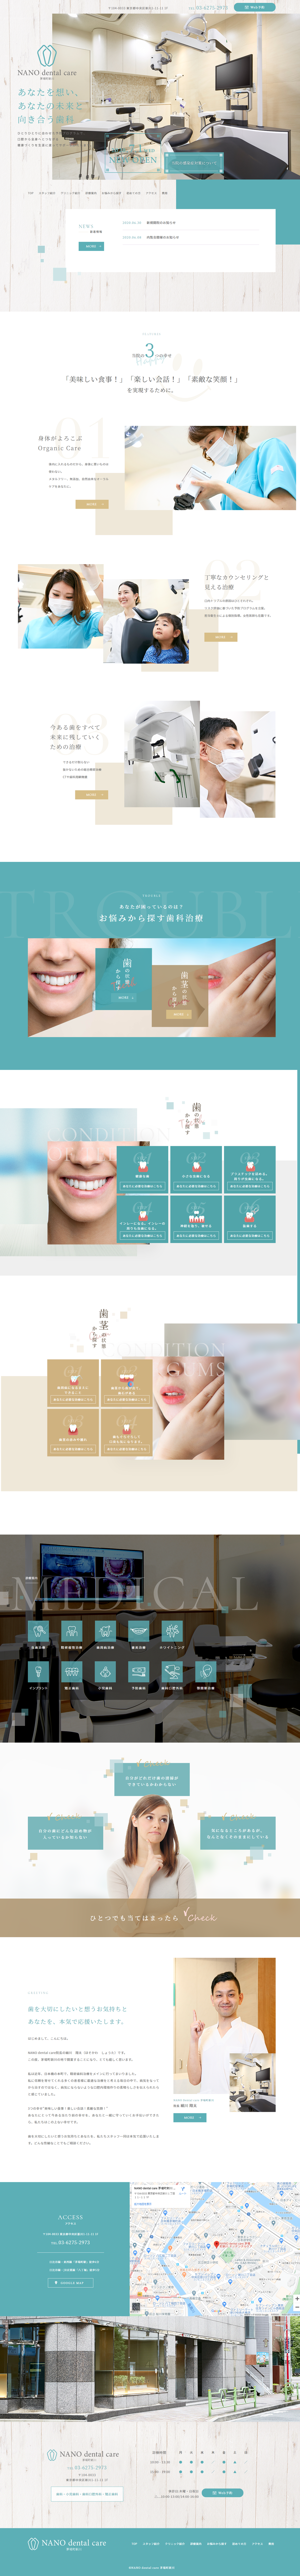 NANO dental care 茅場町新川